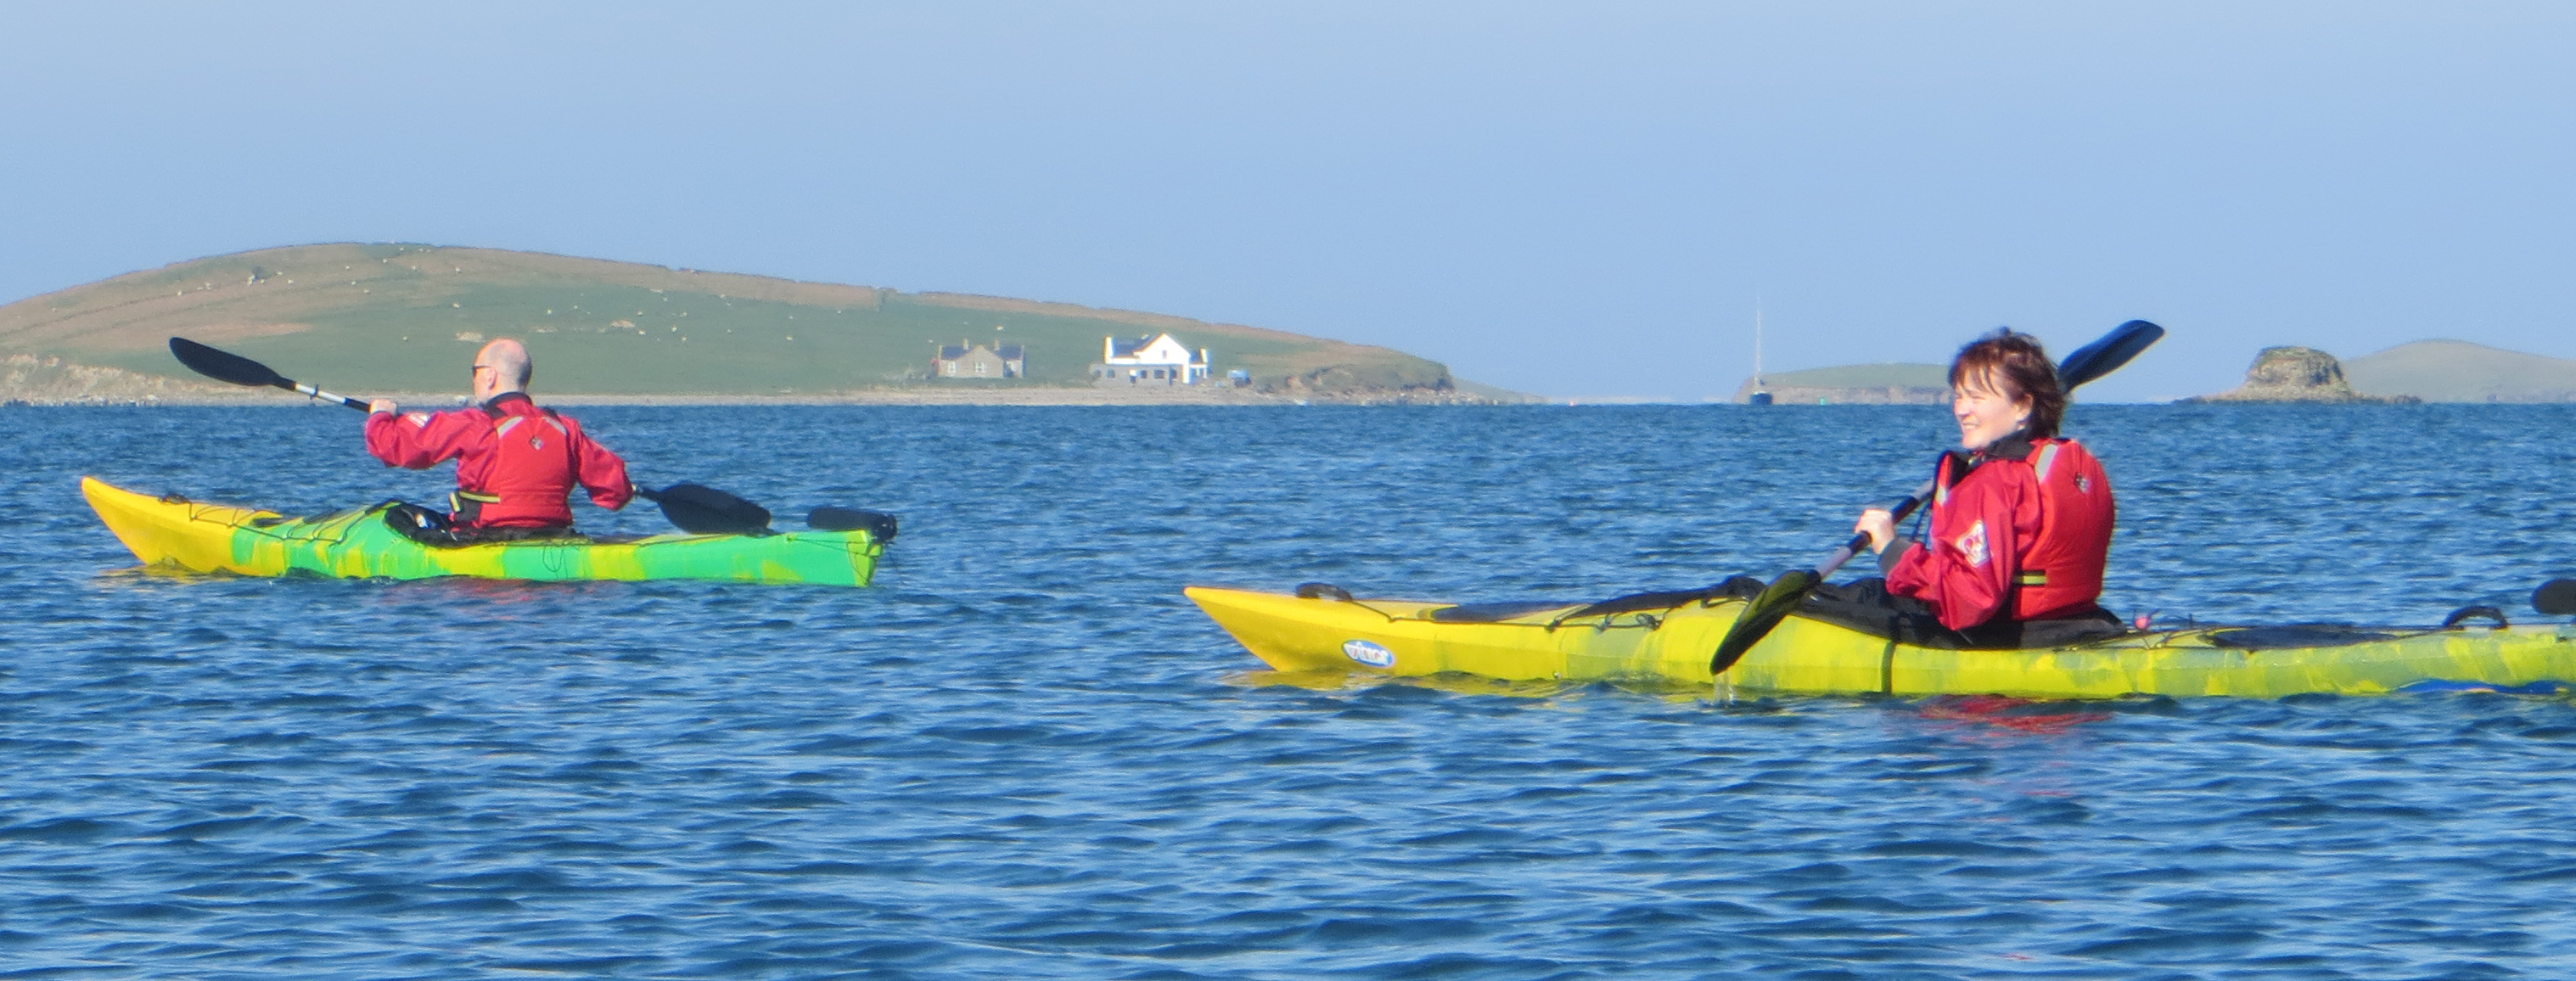 clew bay bike hire and kayaking.jpg